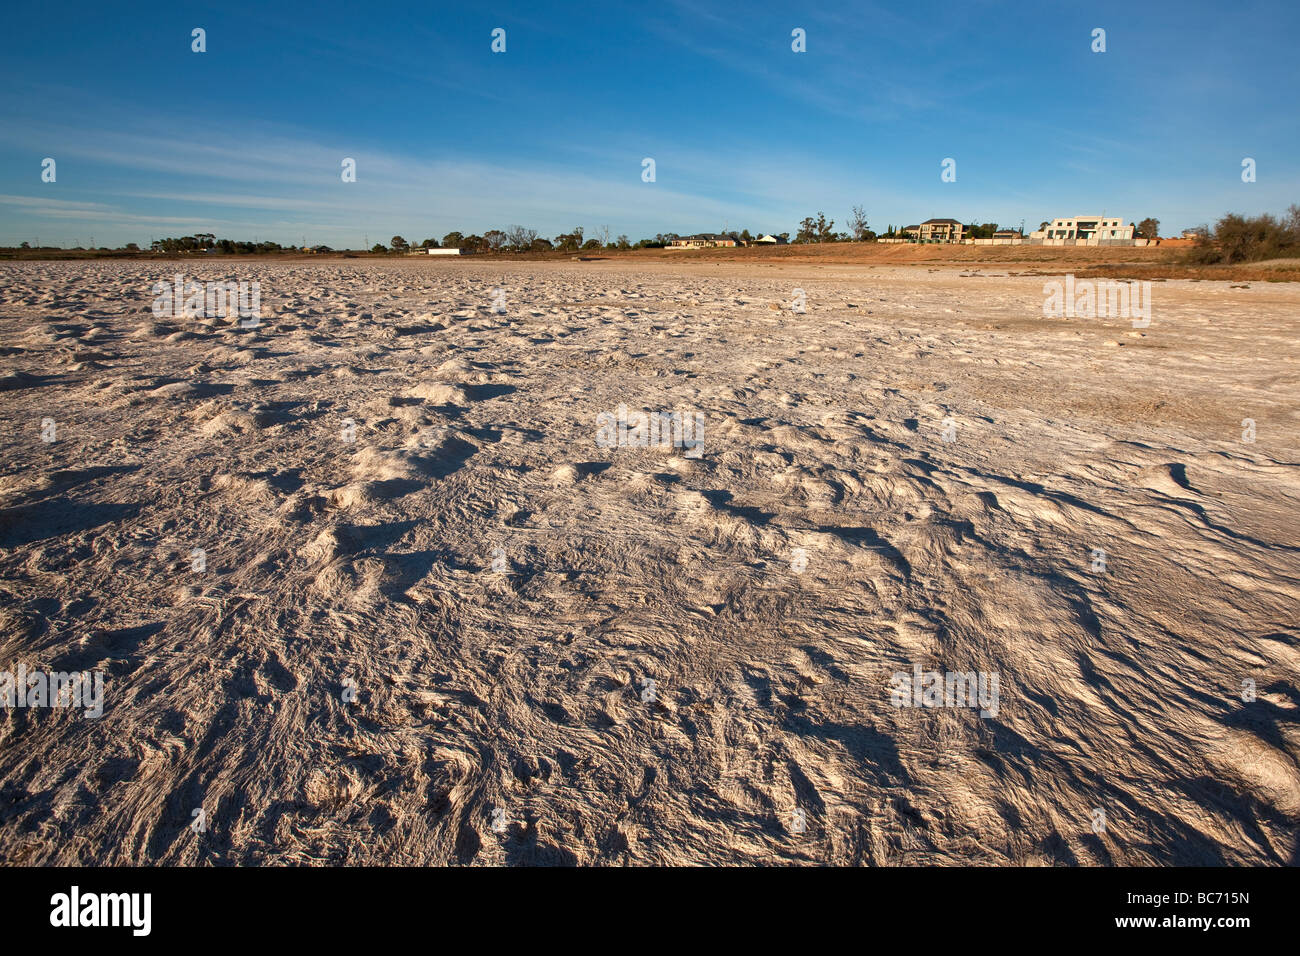 Dry lake bed resulting from drought, South Eastern Australia. - Stock Image